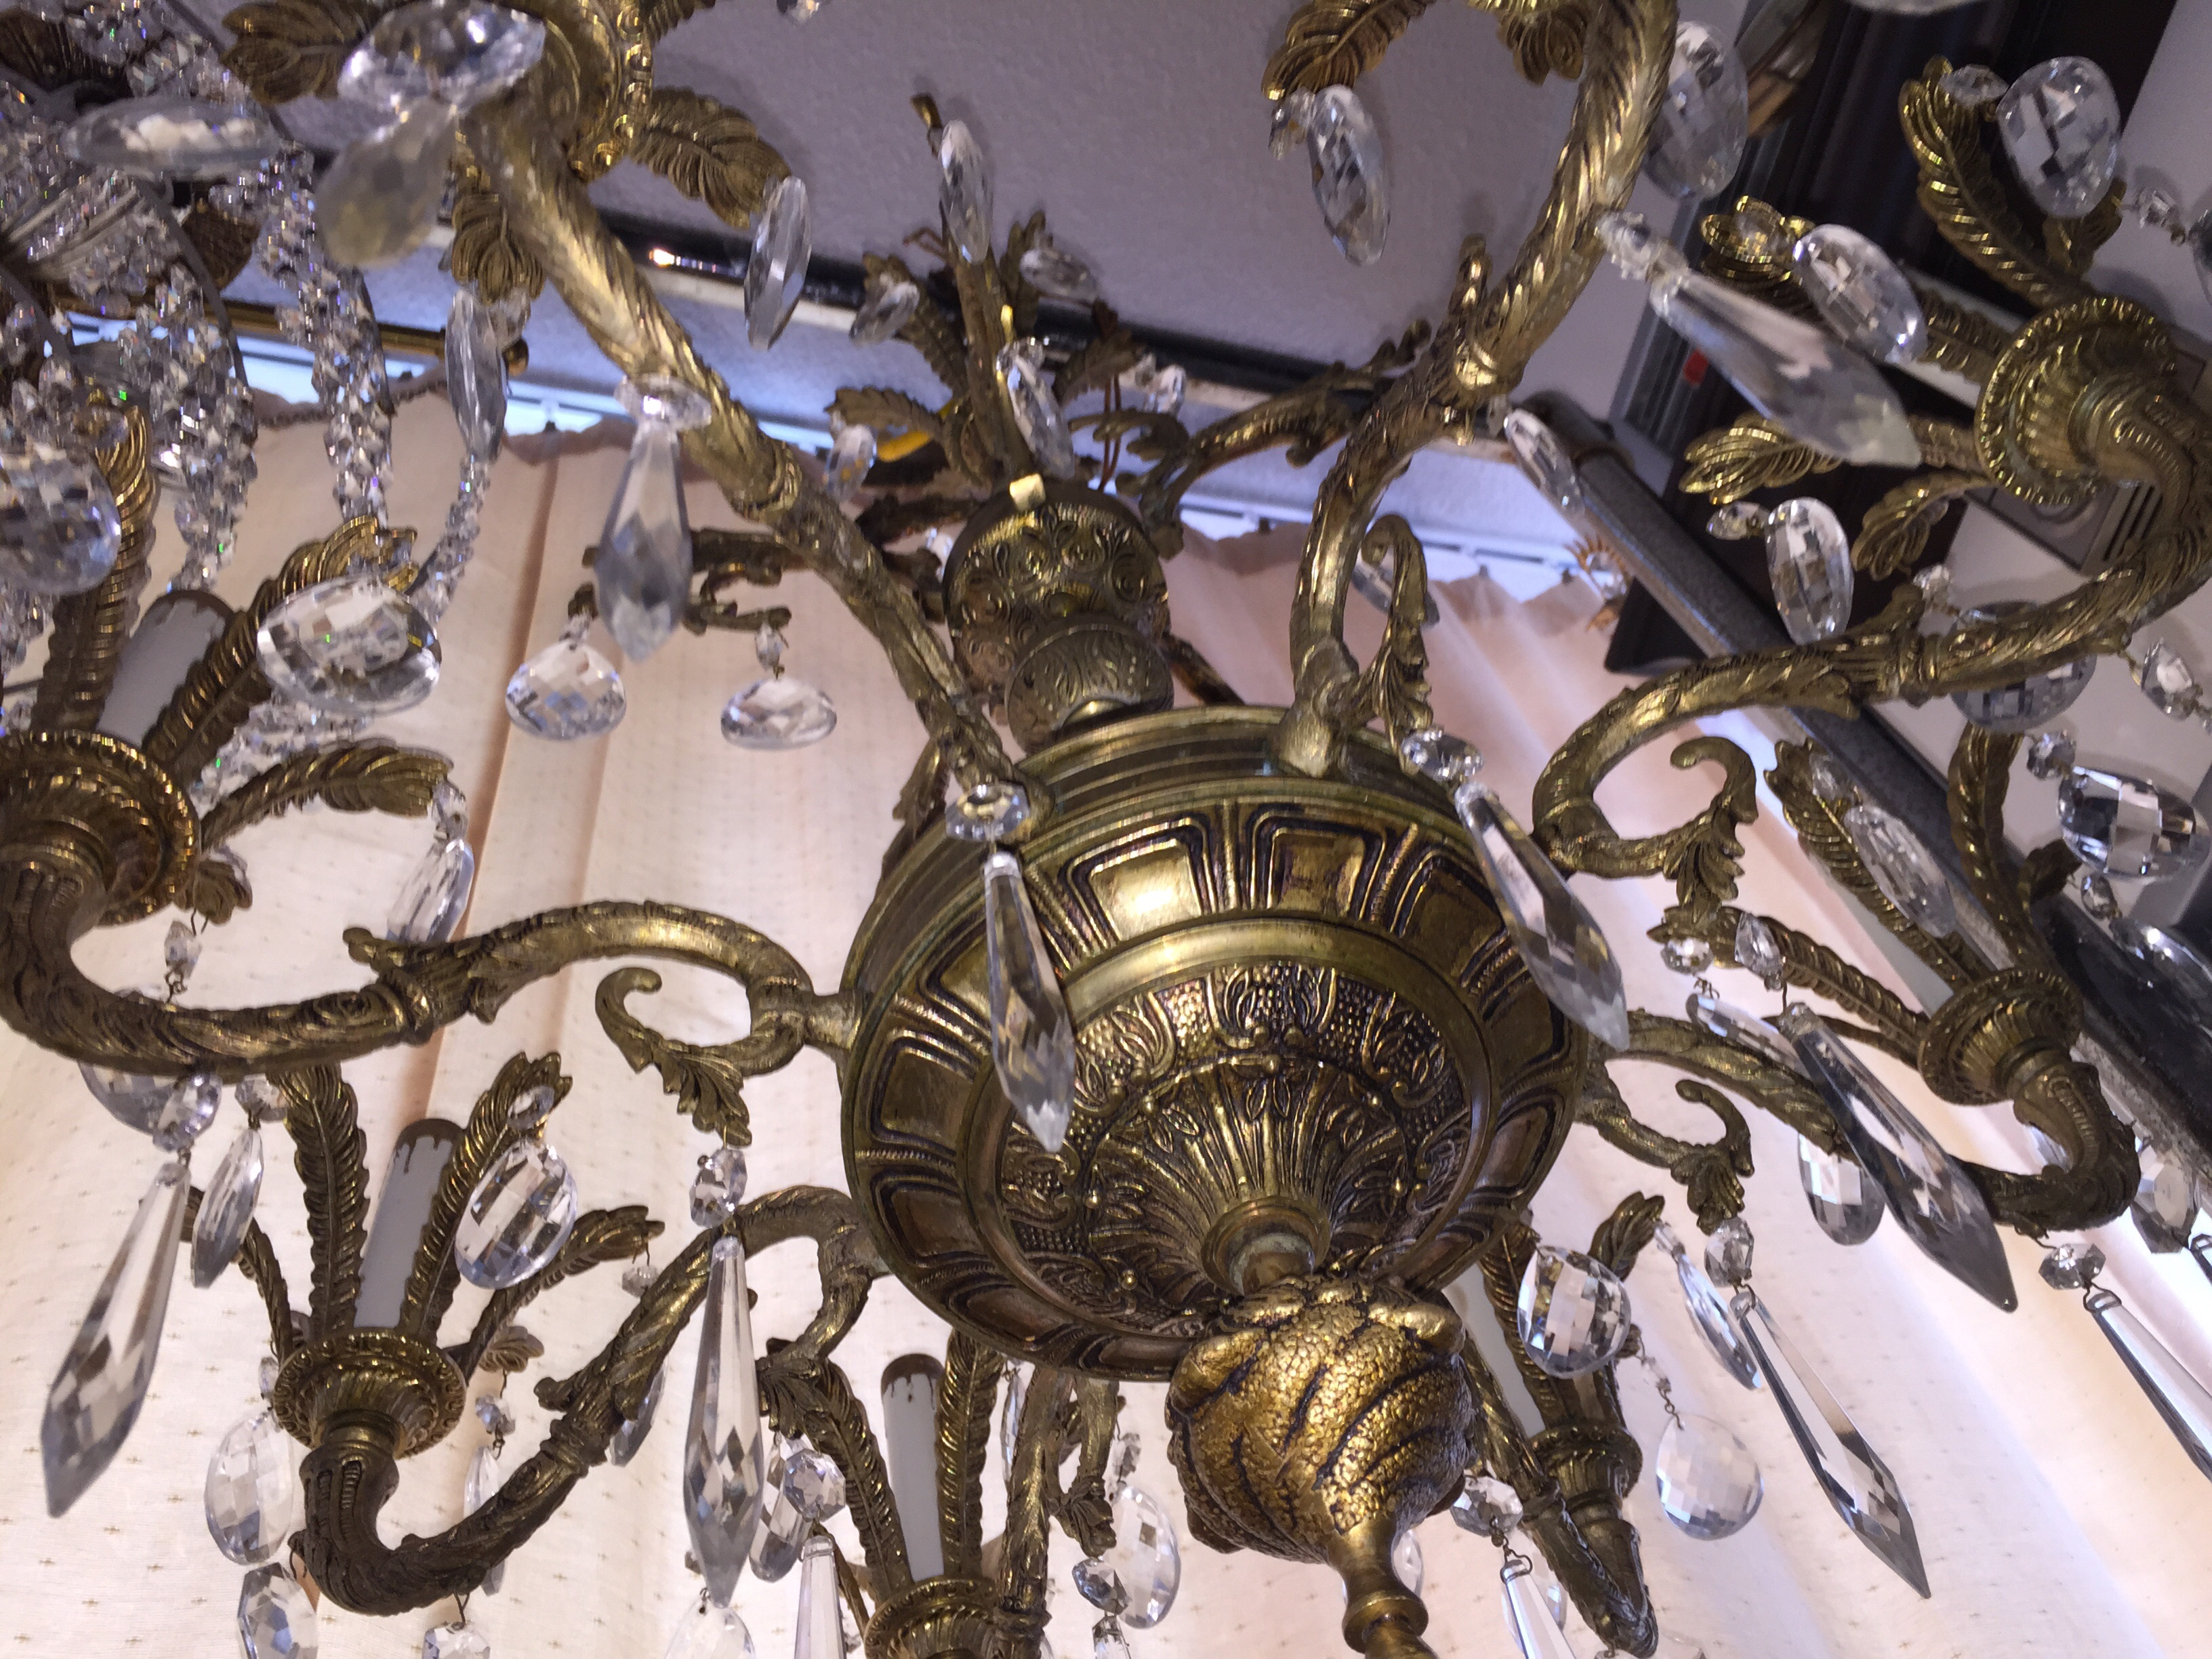 8 arm brass chandelier with real crystals for sale antiques id sell my 8 arm solid brass chandelier beautiful large 8 arms chandelier for sale in excellent working condition with 80 crystals clean and beautiful aloadofball Choice Image